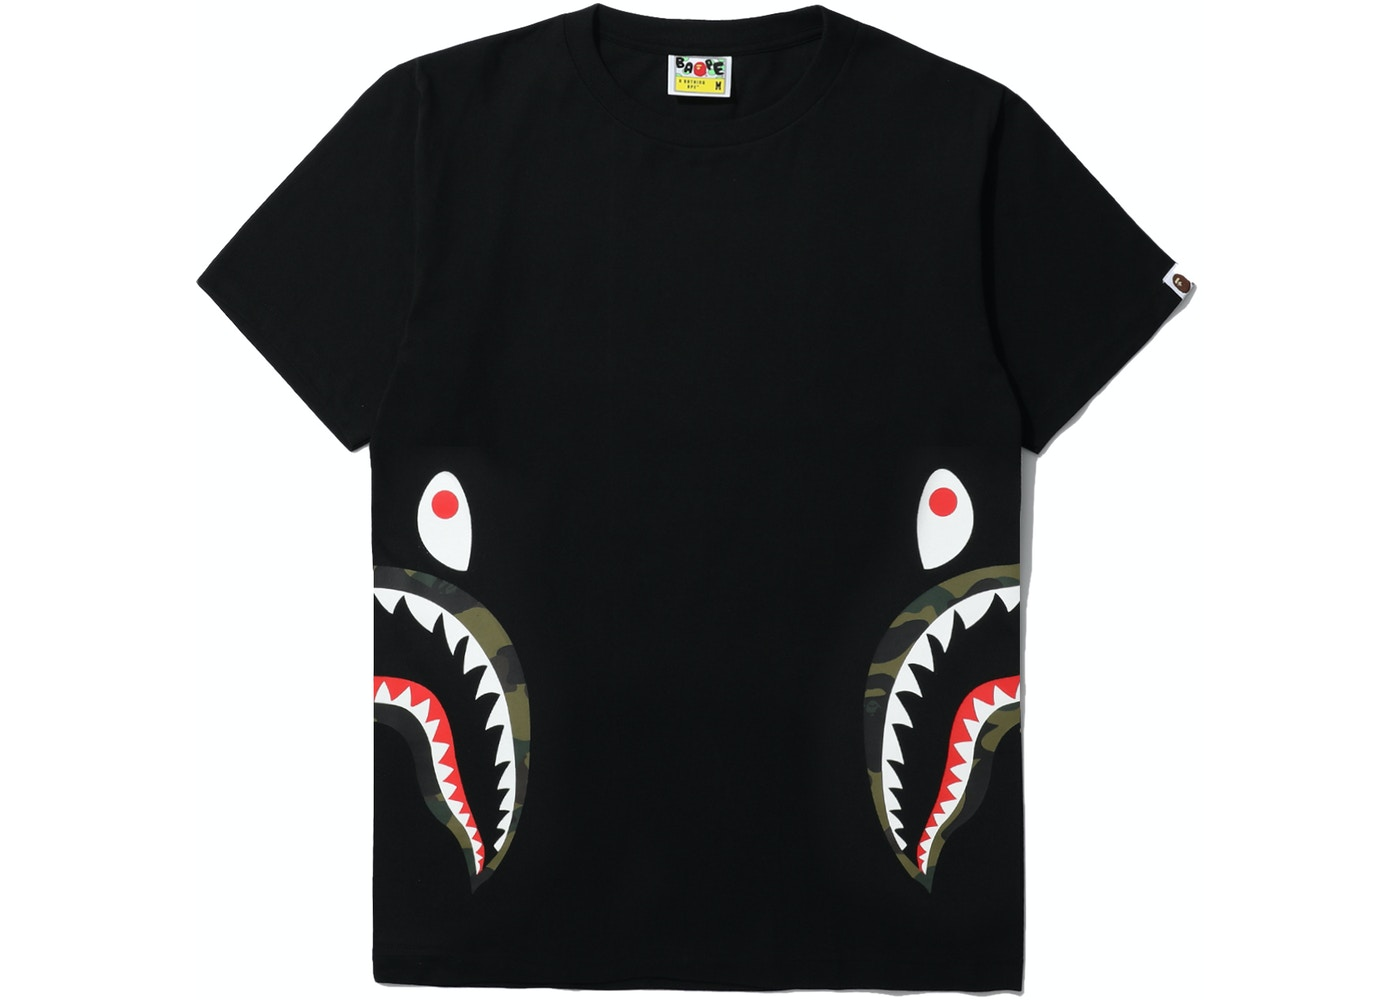 15f40a22 Streetwear - Bape T-Shirts - Most Popular